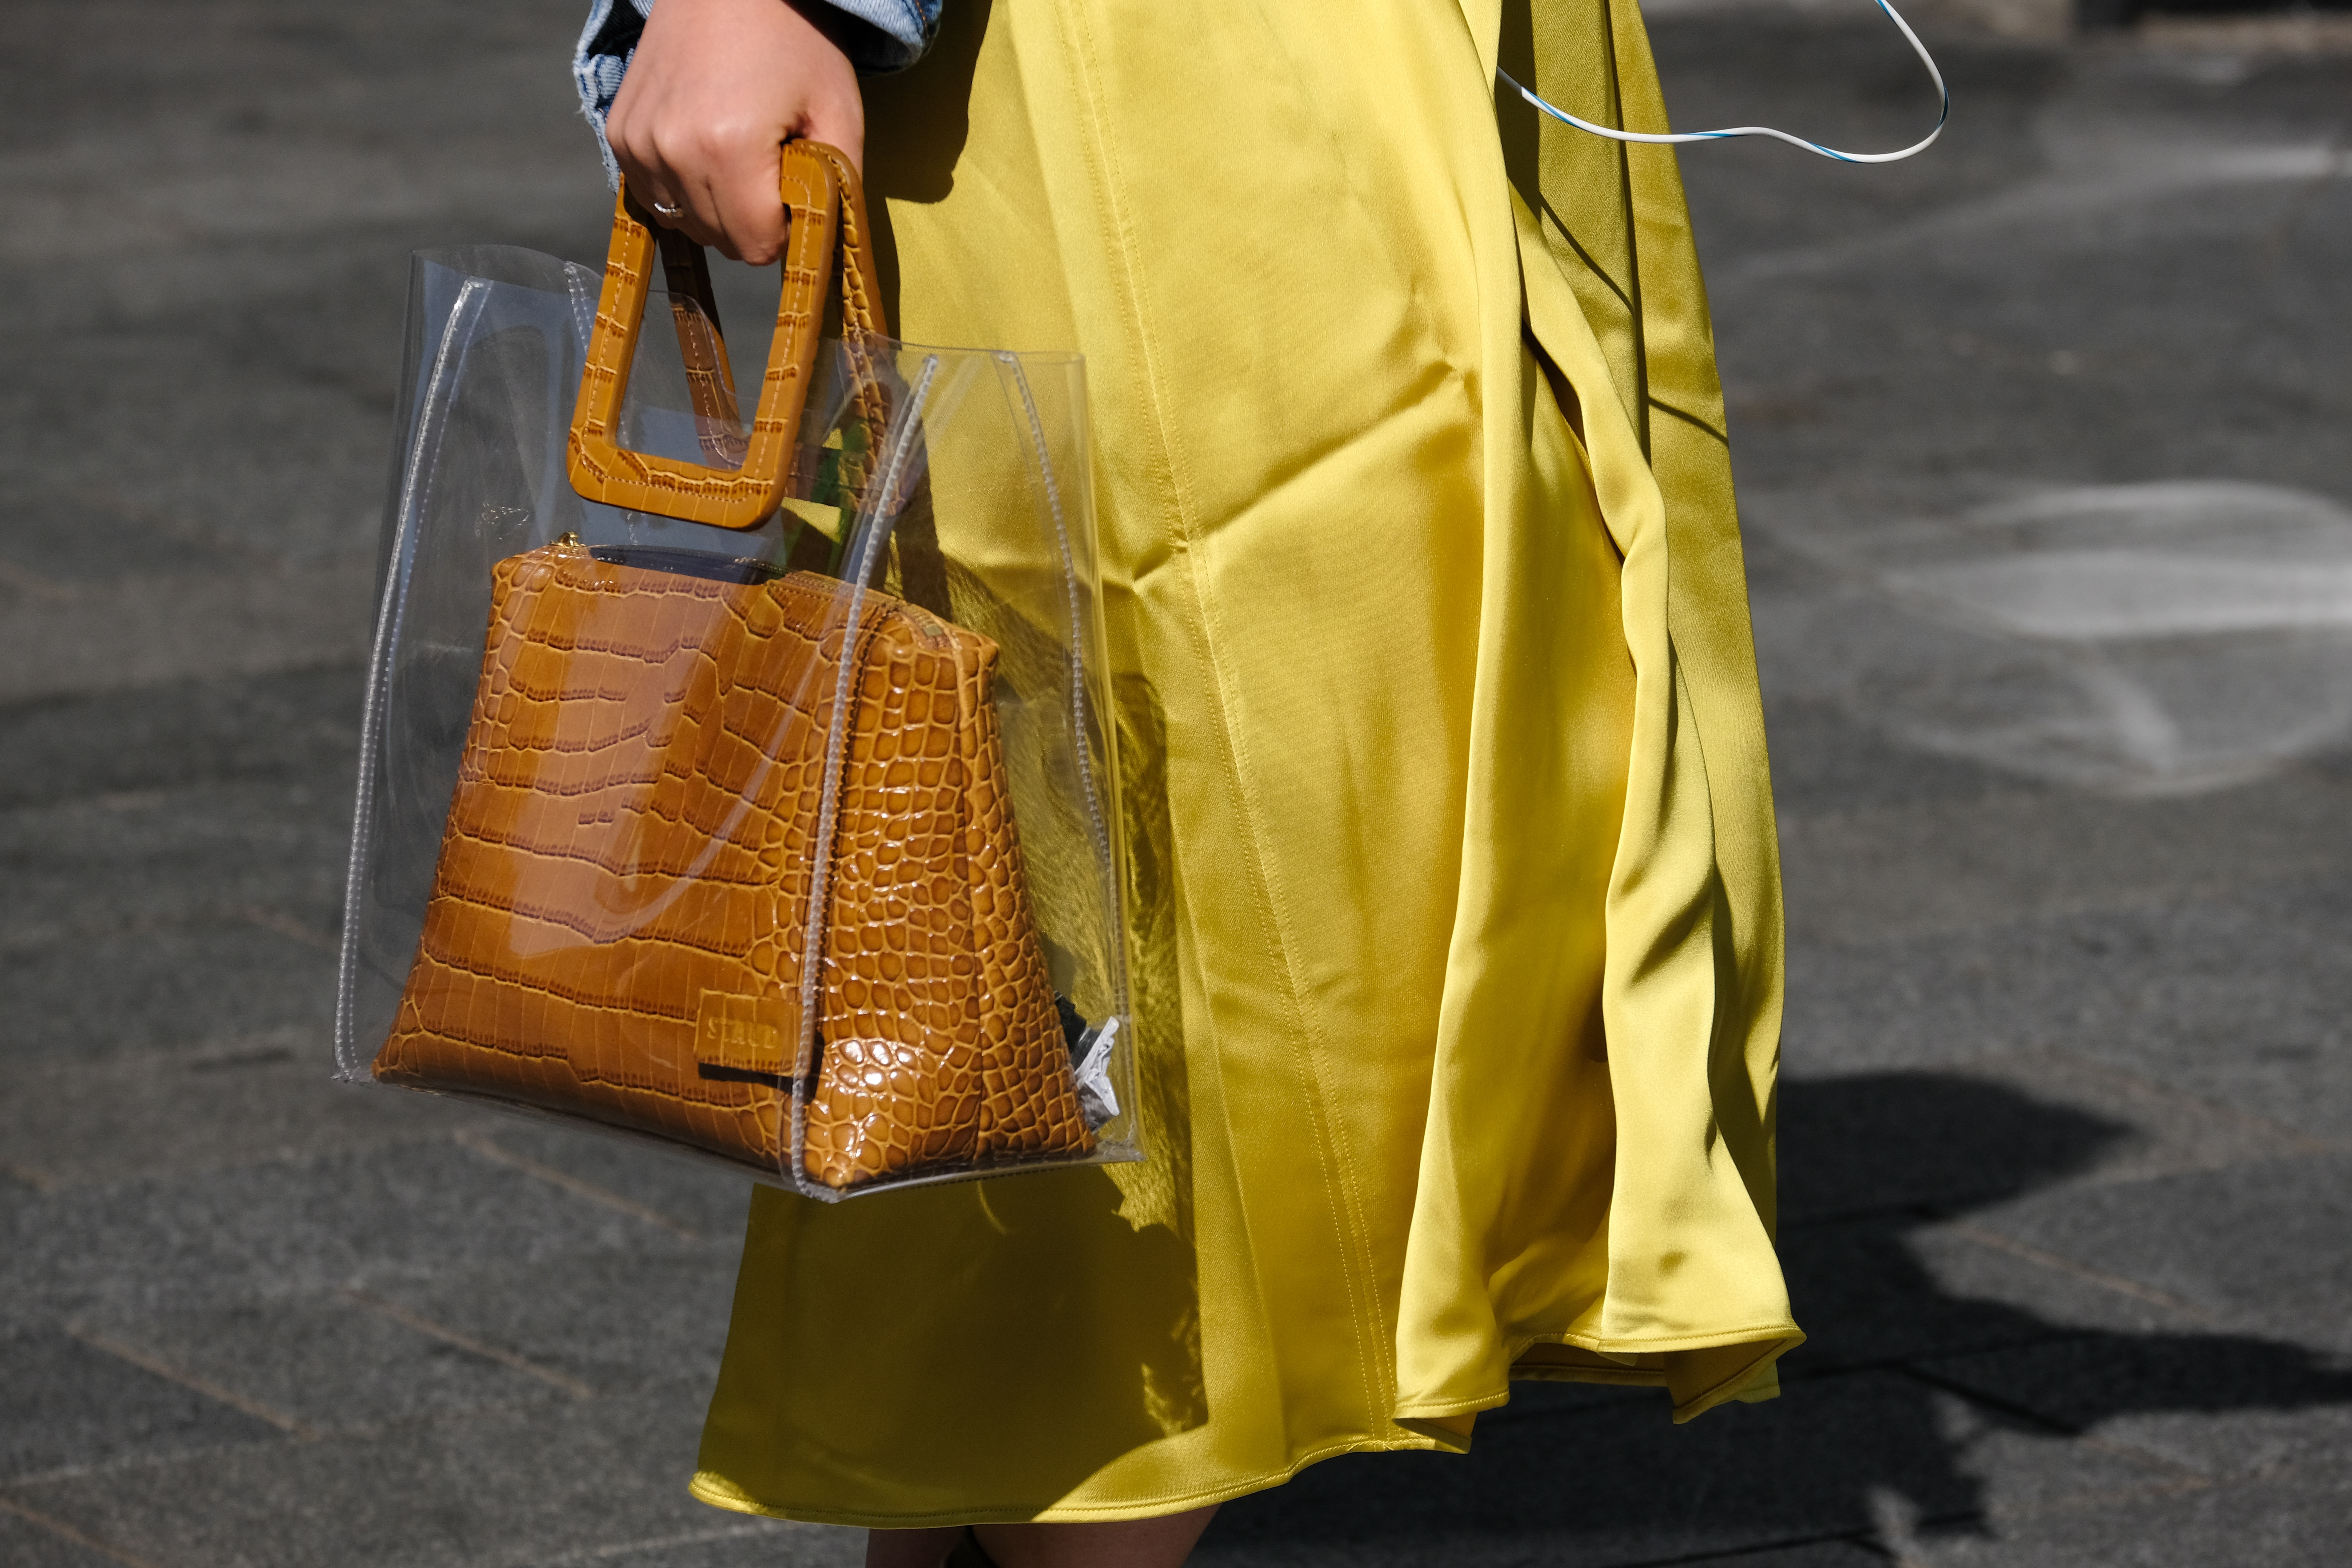 20 Popular Bag Brands People are Carrying on the Street